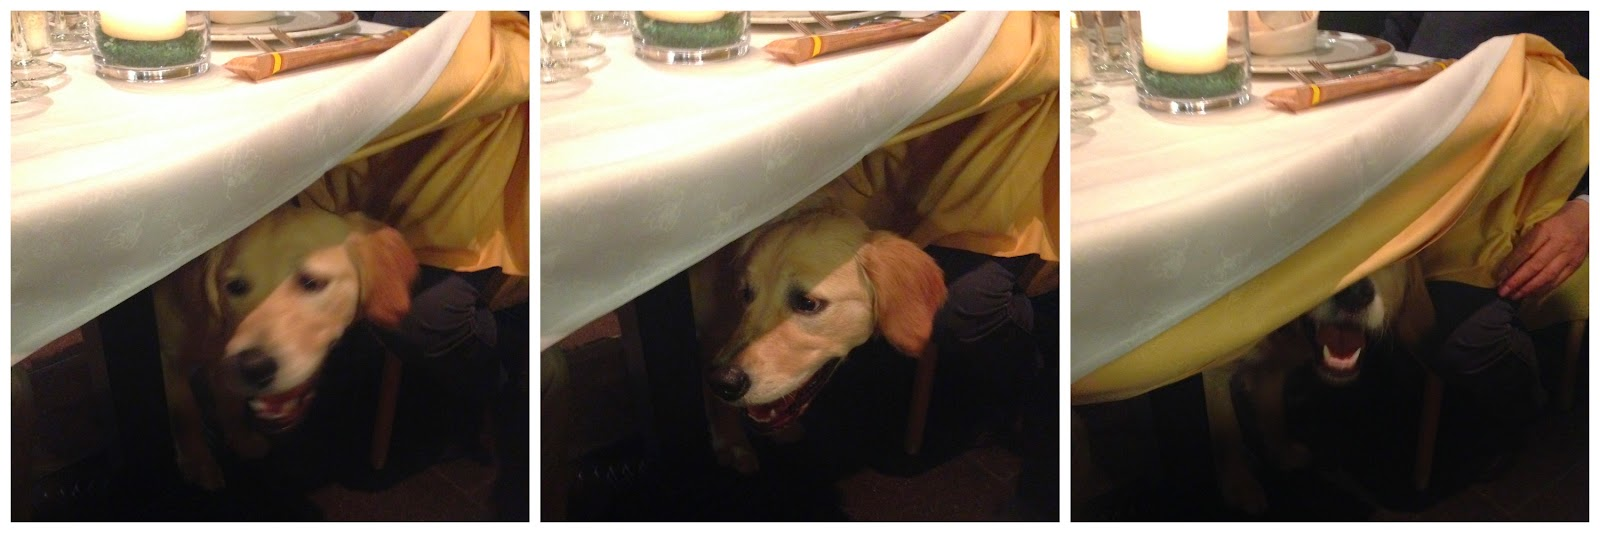 Una cena davvero dog friendly!